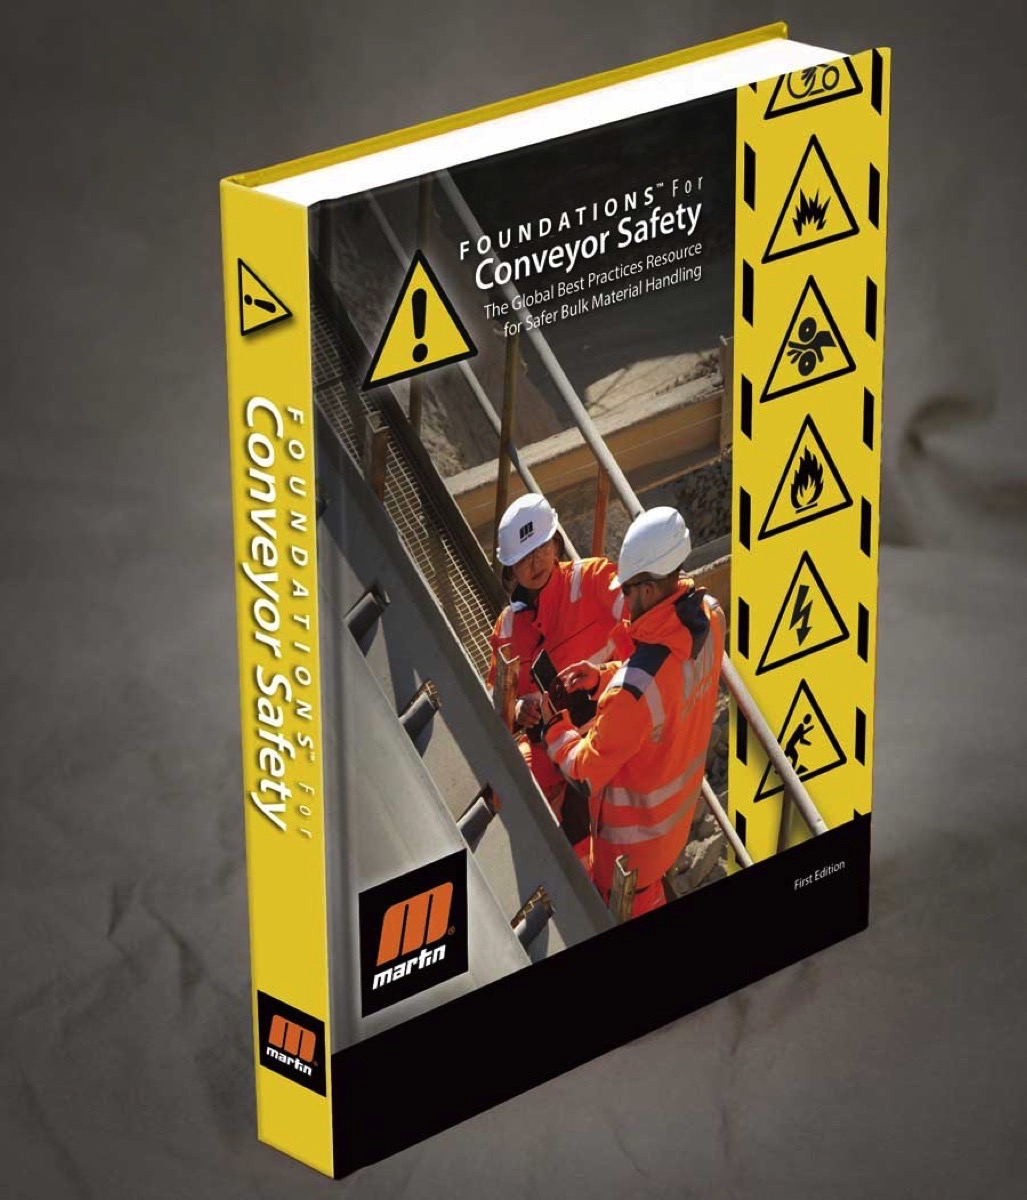 Foundations for Conveyor Safety is dedicated to production done safely.